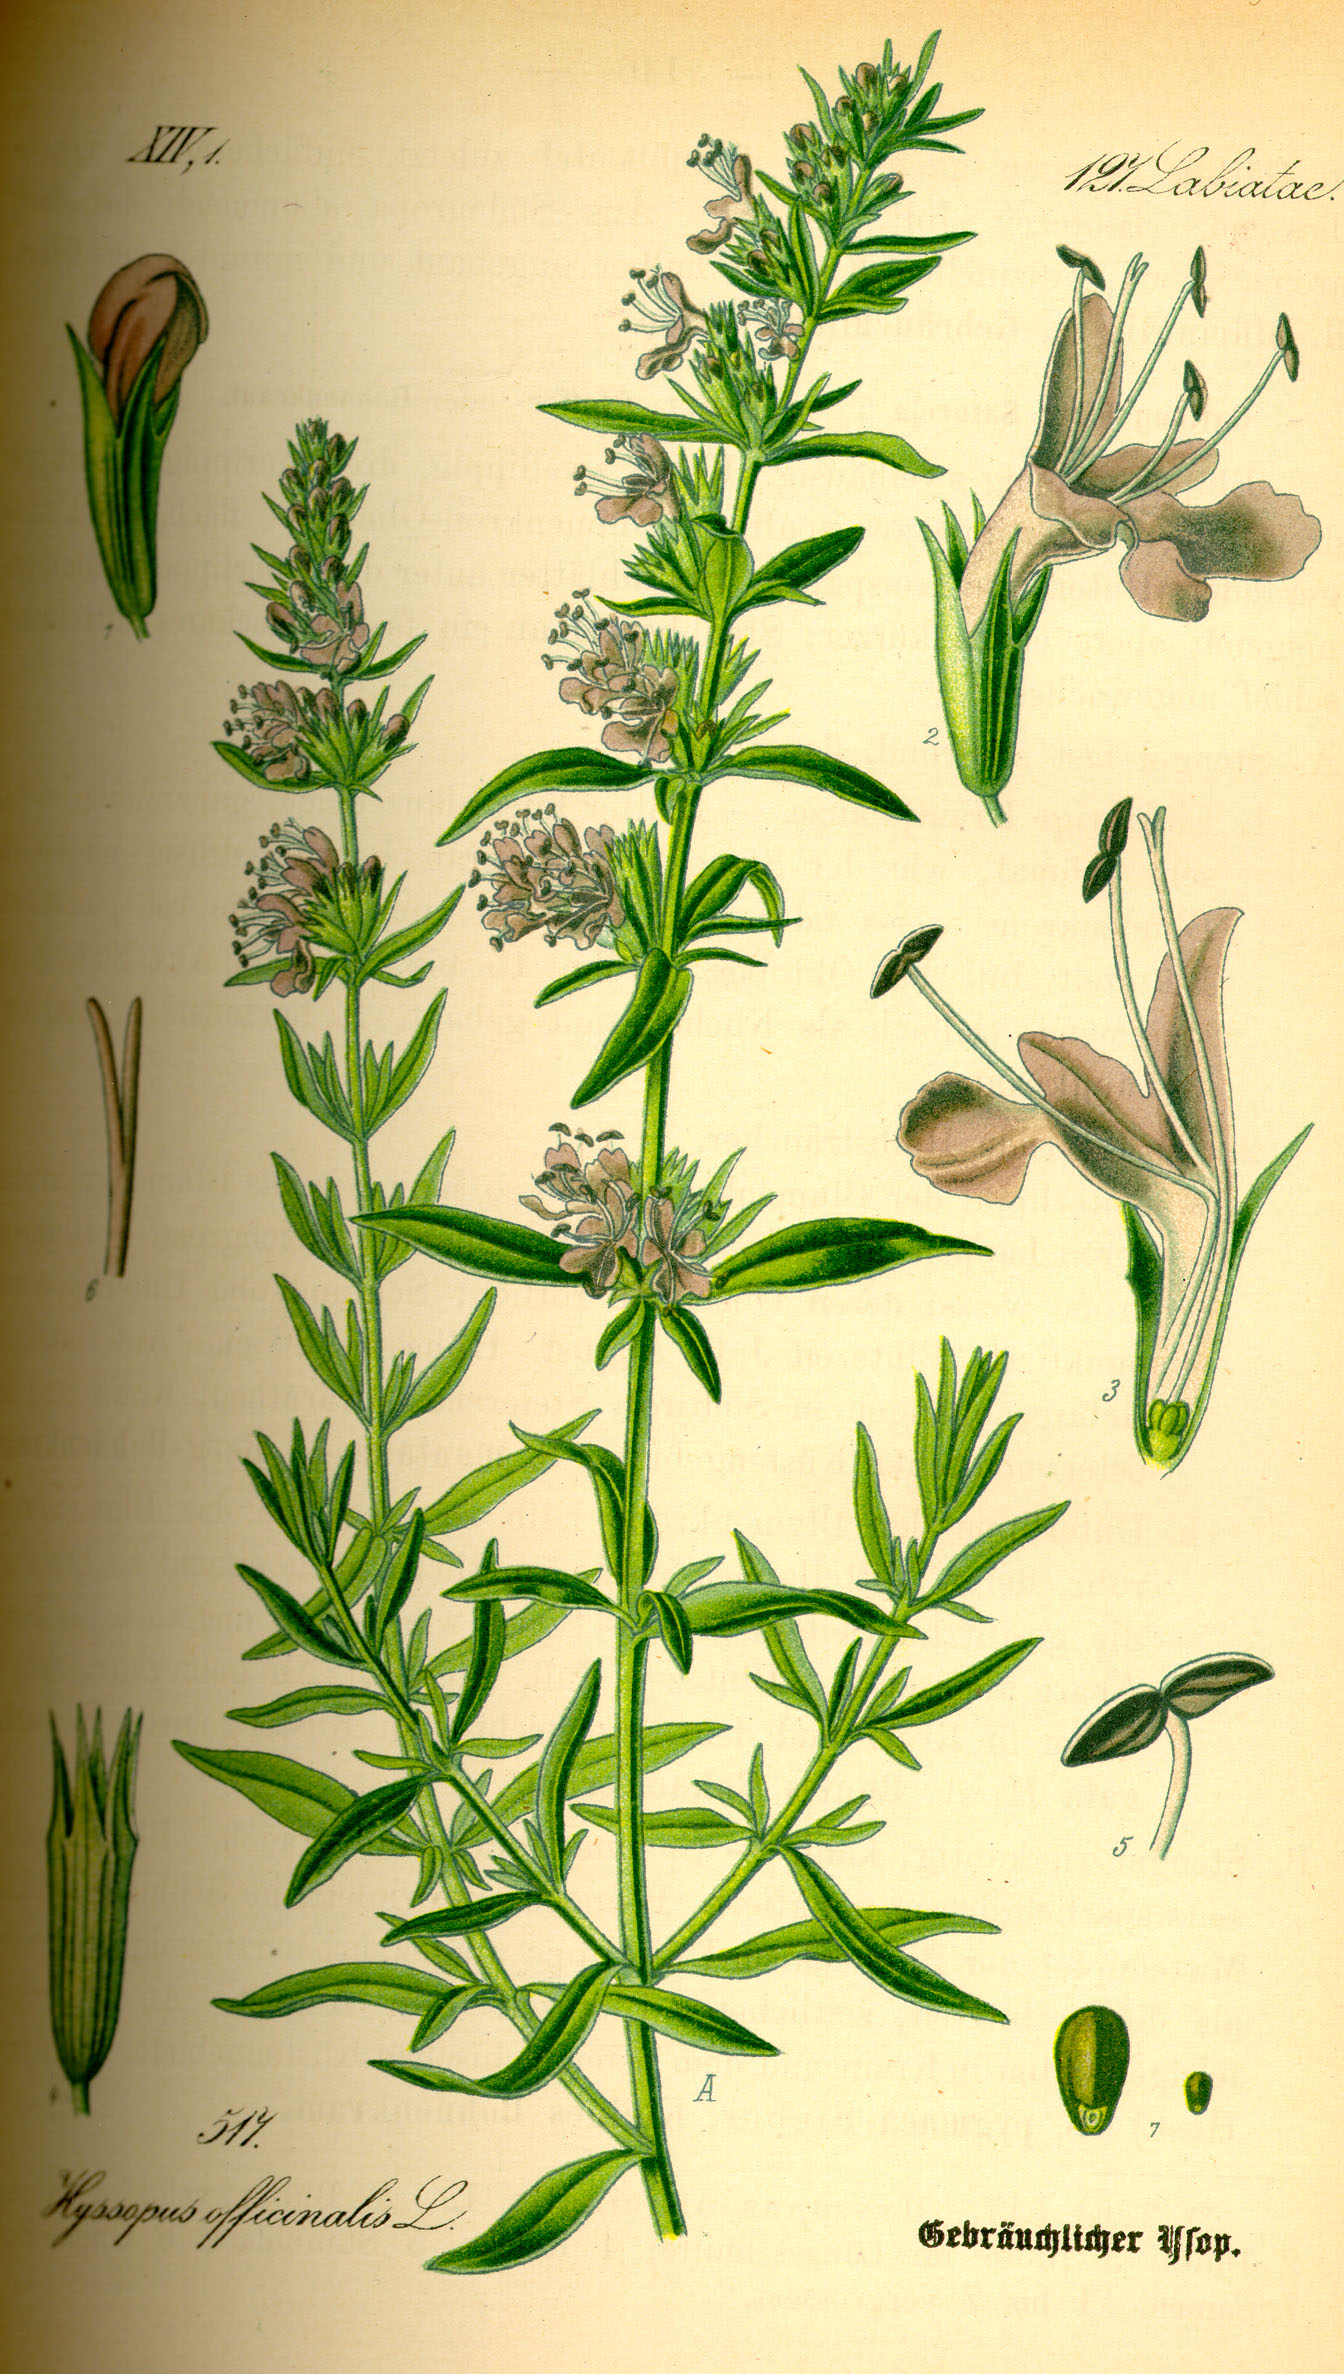 """Illustration Hyssopus officinalis0"" by User:Topjabot - Original book source:Prof. Dr. Otto Wilhelm Thomé Flora von Deutschland, Österreich und der Schweiz 1885, Gera, GermanySource: www.biolib.de. Licensed under Public Domain via Commons - https://commons.wikimedia.org/wiki/File:Illustration_Hyssopus_officinalis0.jpg#/media/File:Illustration_Hyssopus_officinalis0.jpg"